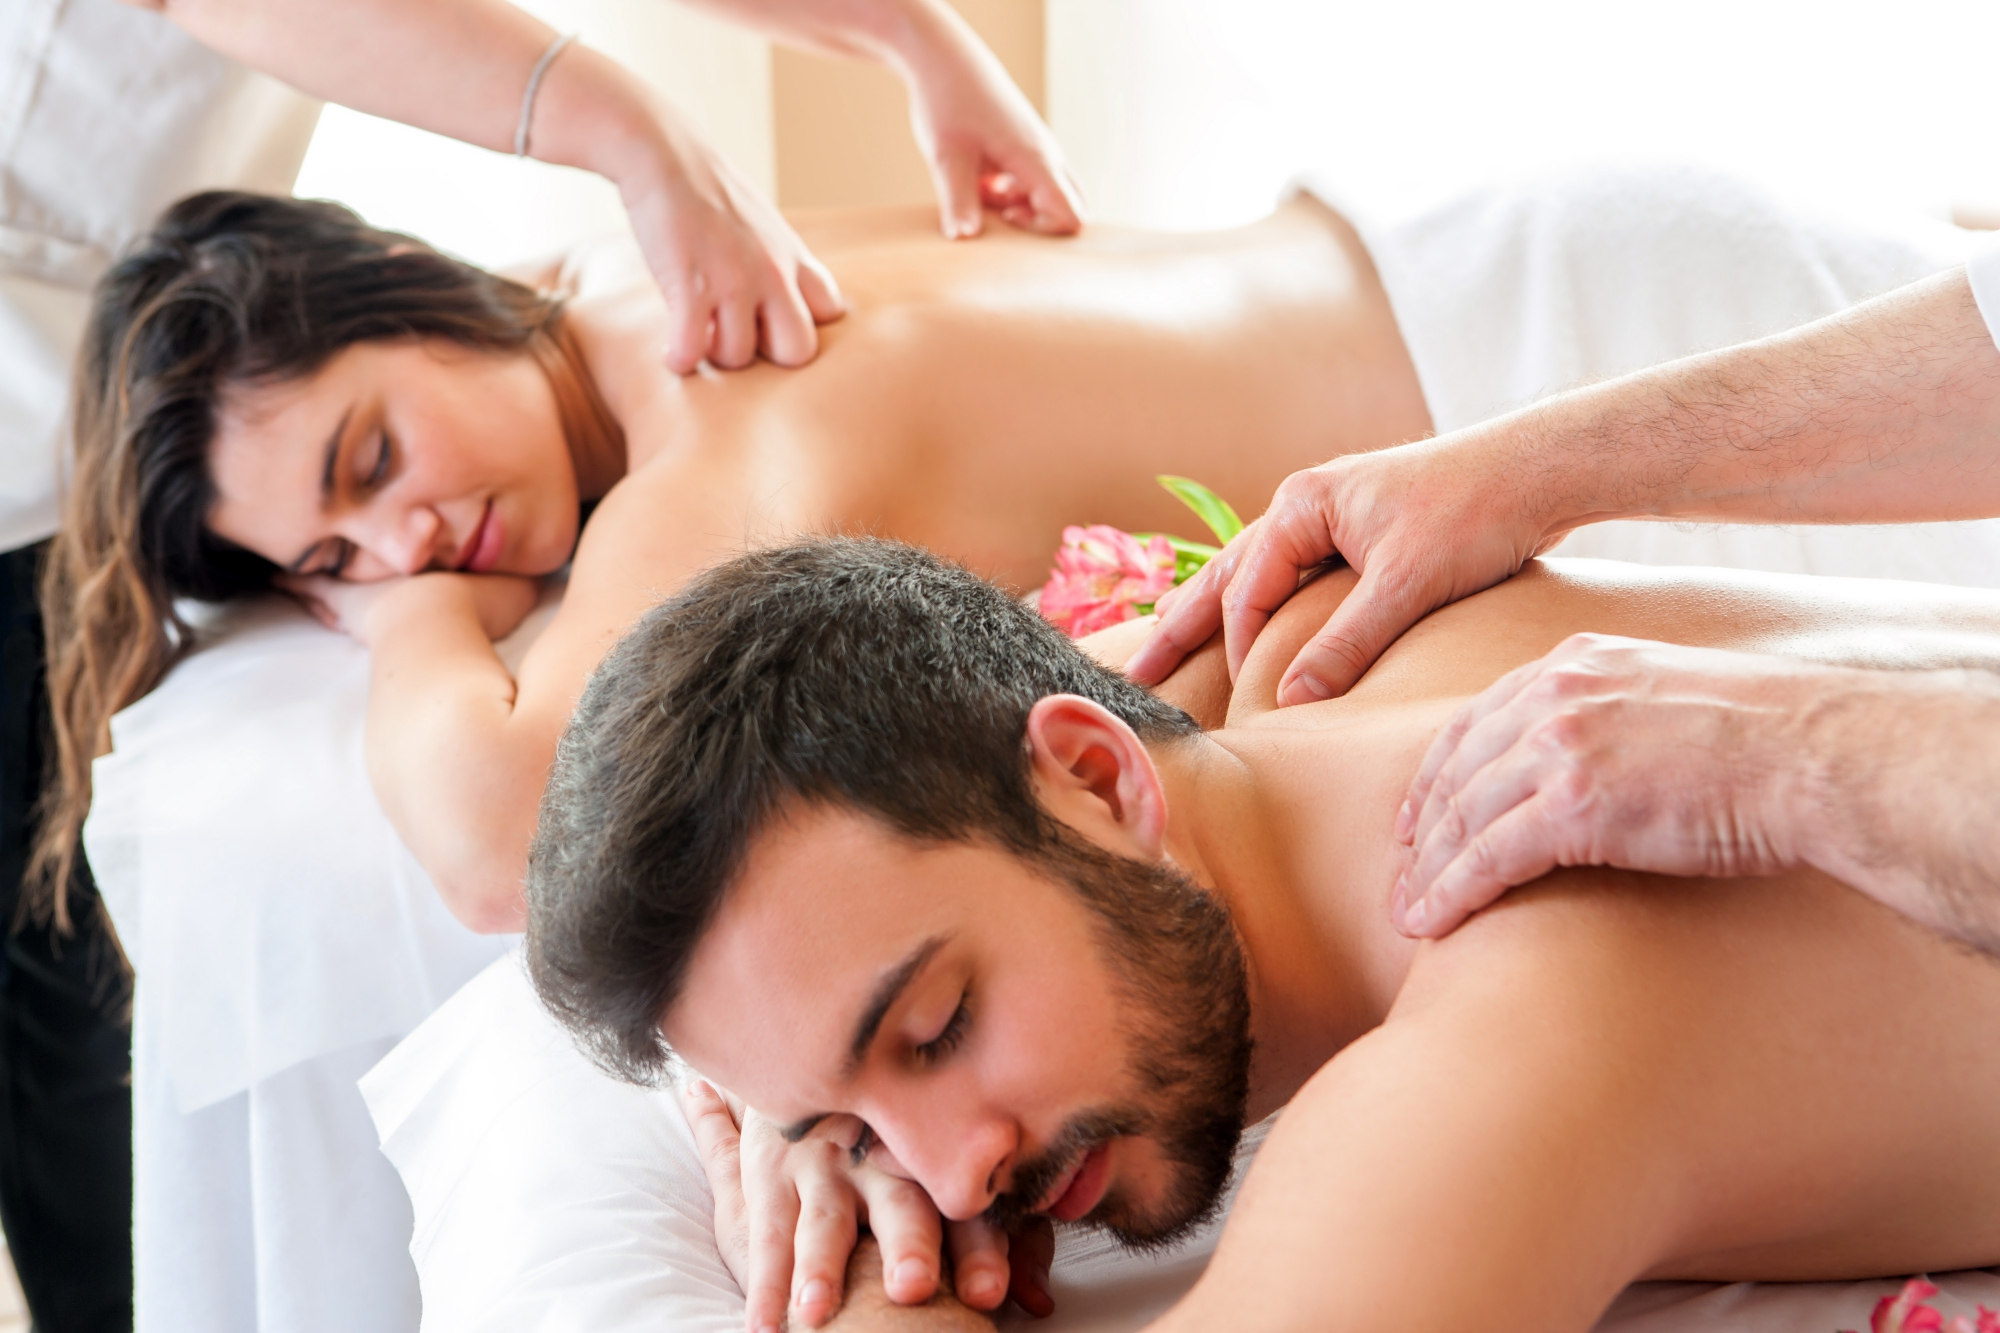 couples-massage-pittsford-ny.jpg